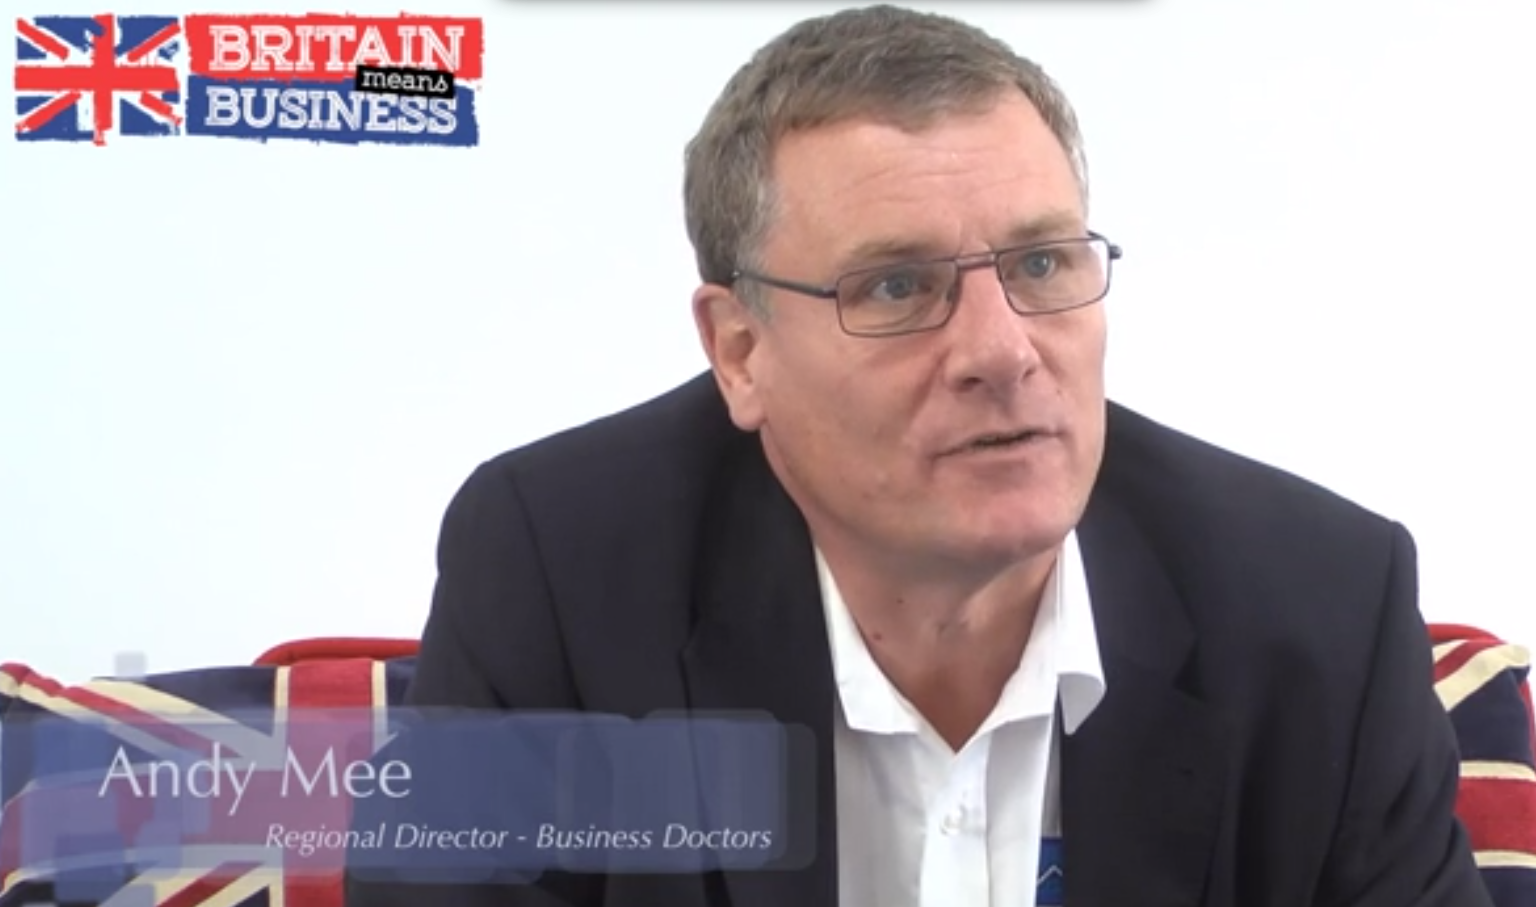 Britain Means Business exhibition - Business Doctors' video released!